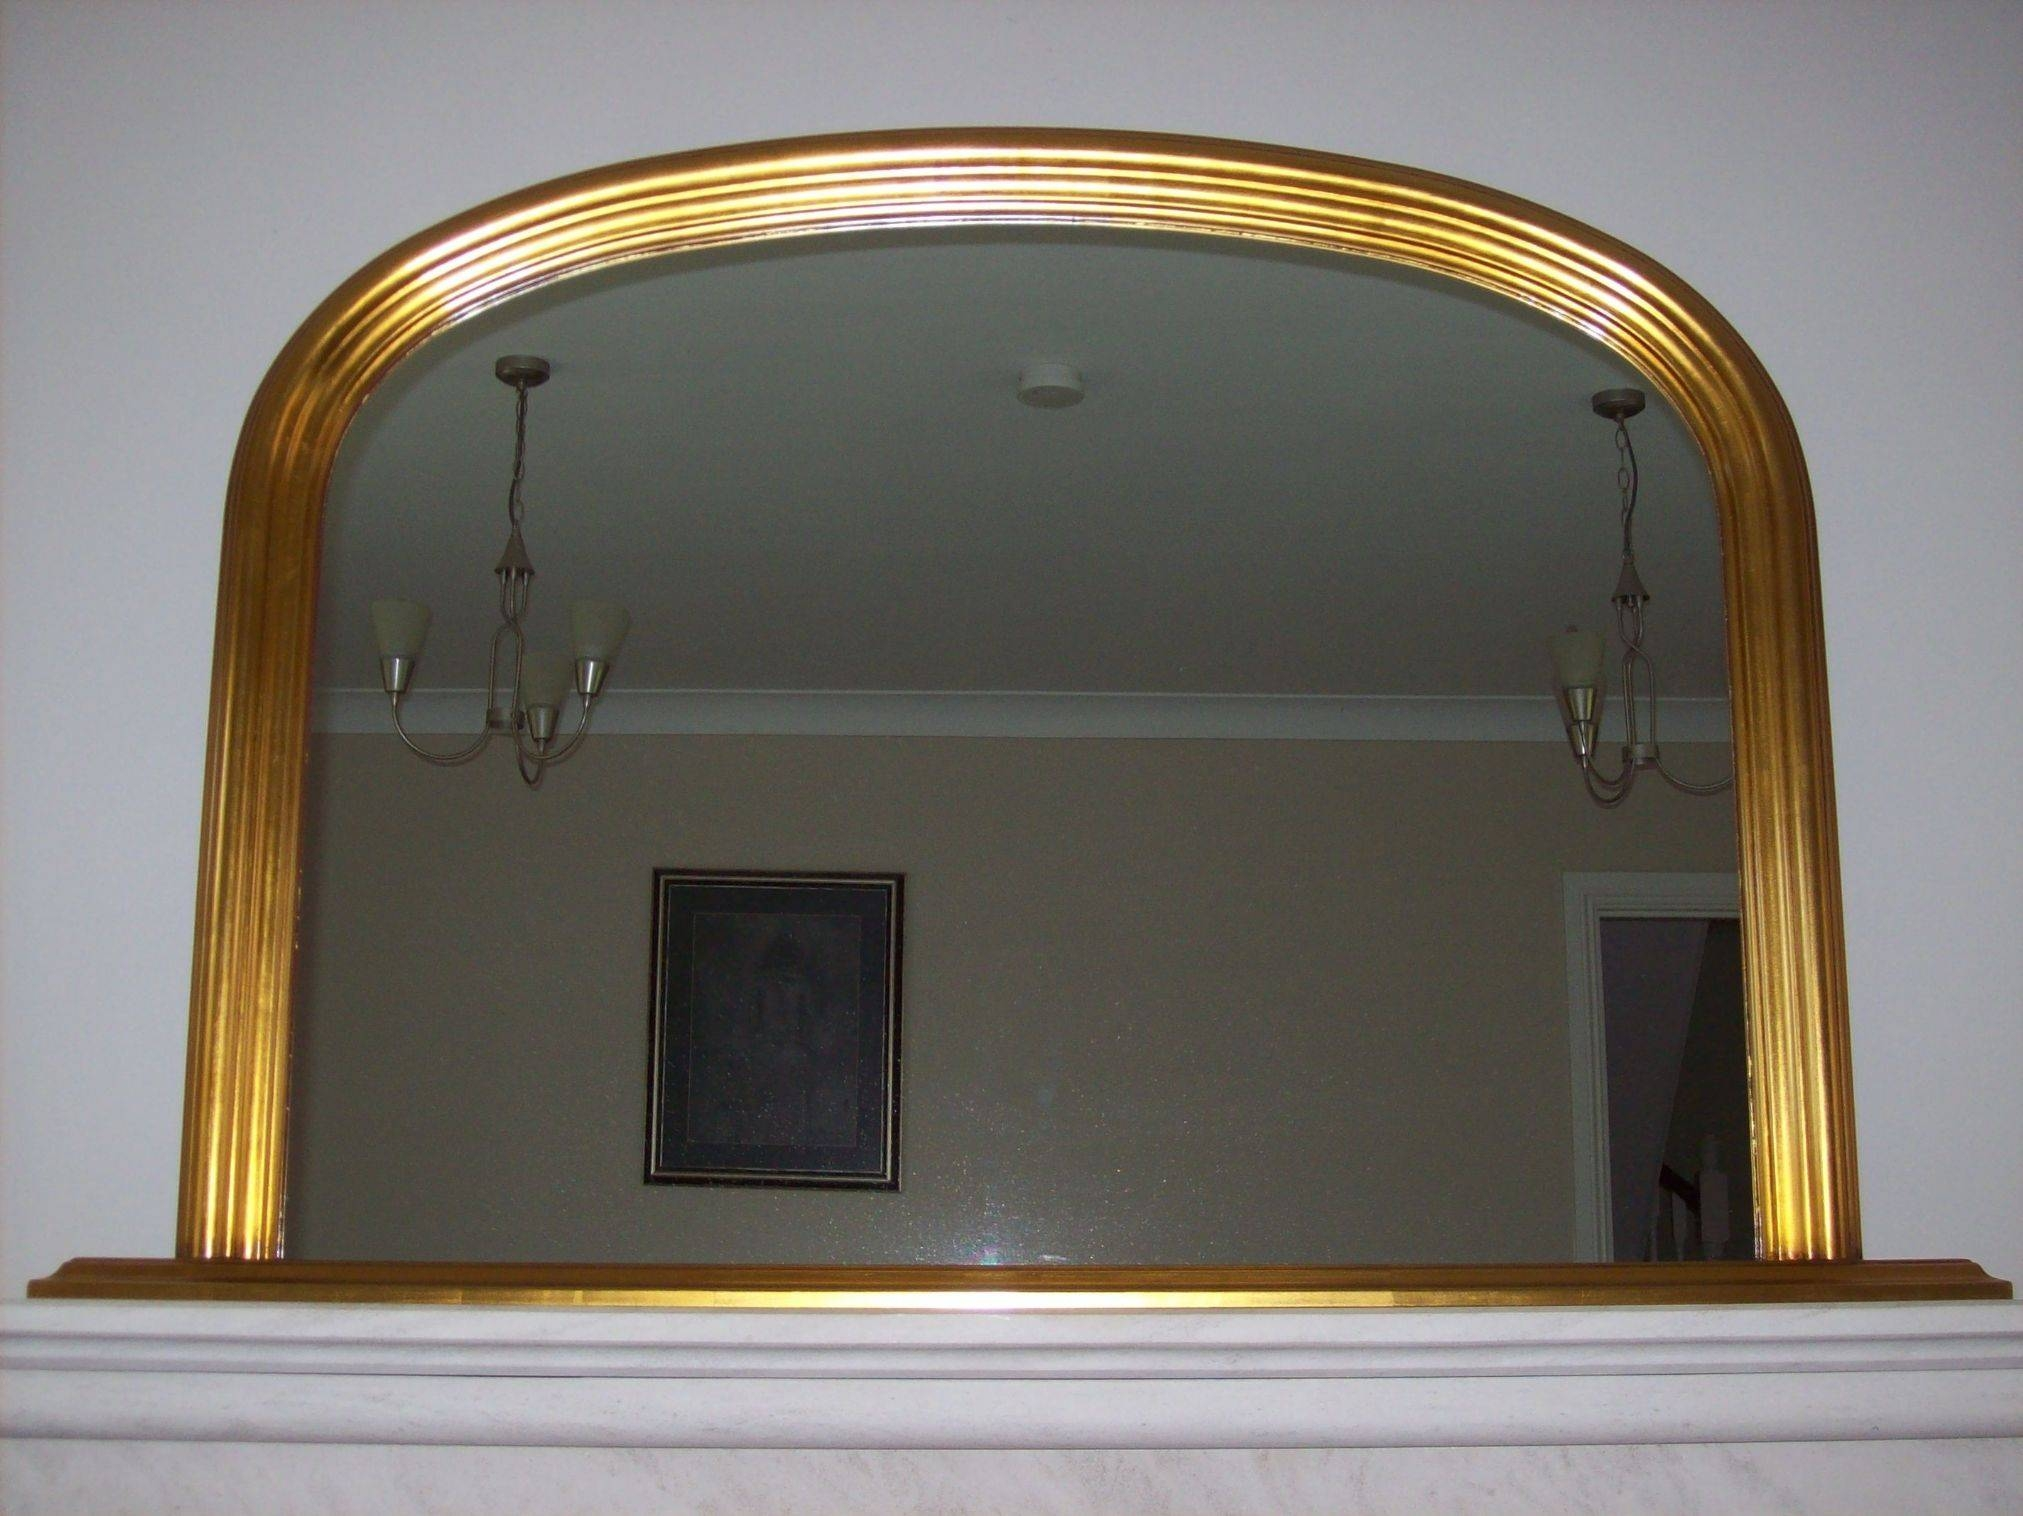 Gold Arched Overmantle Mirror intended for Vintage Overmantle Mirrors (Image 11 of 25)